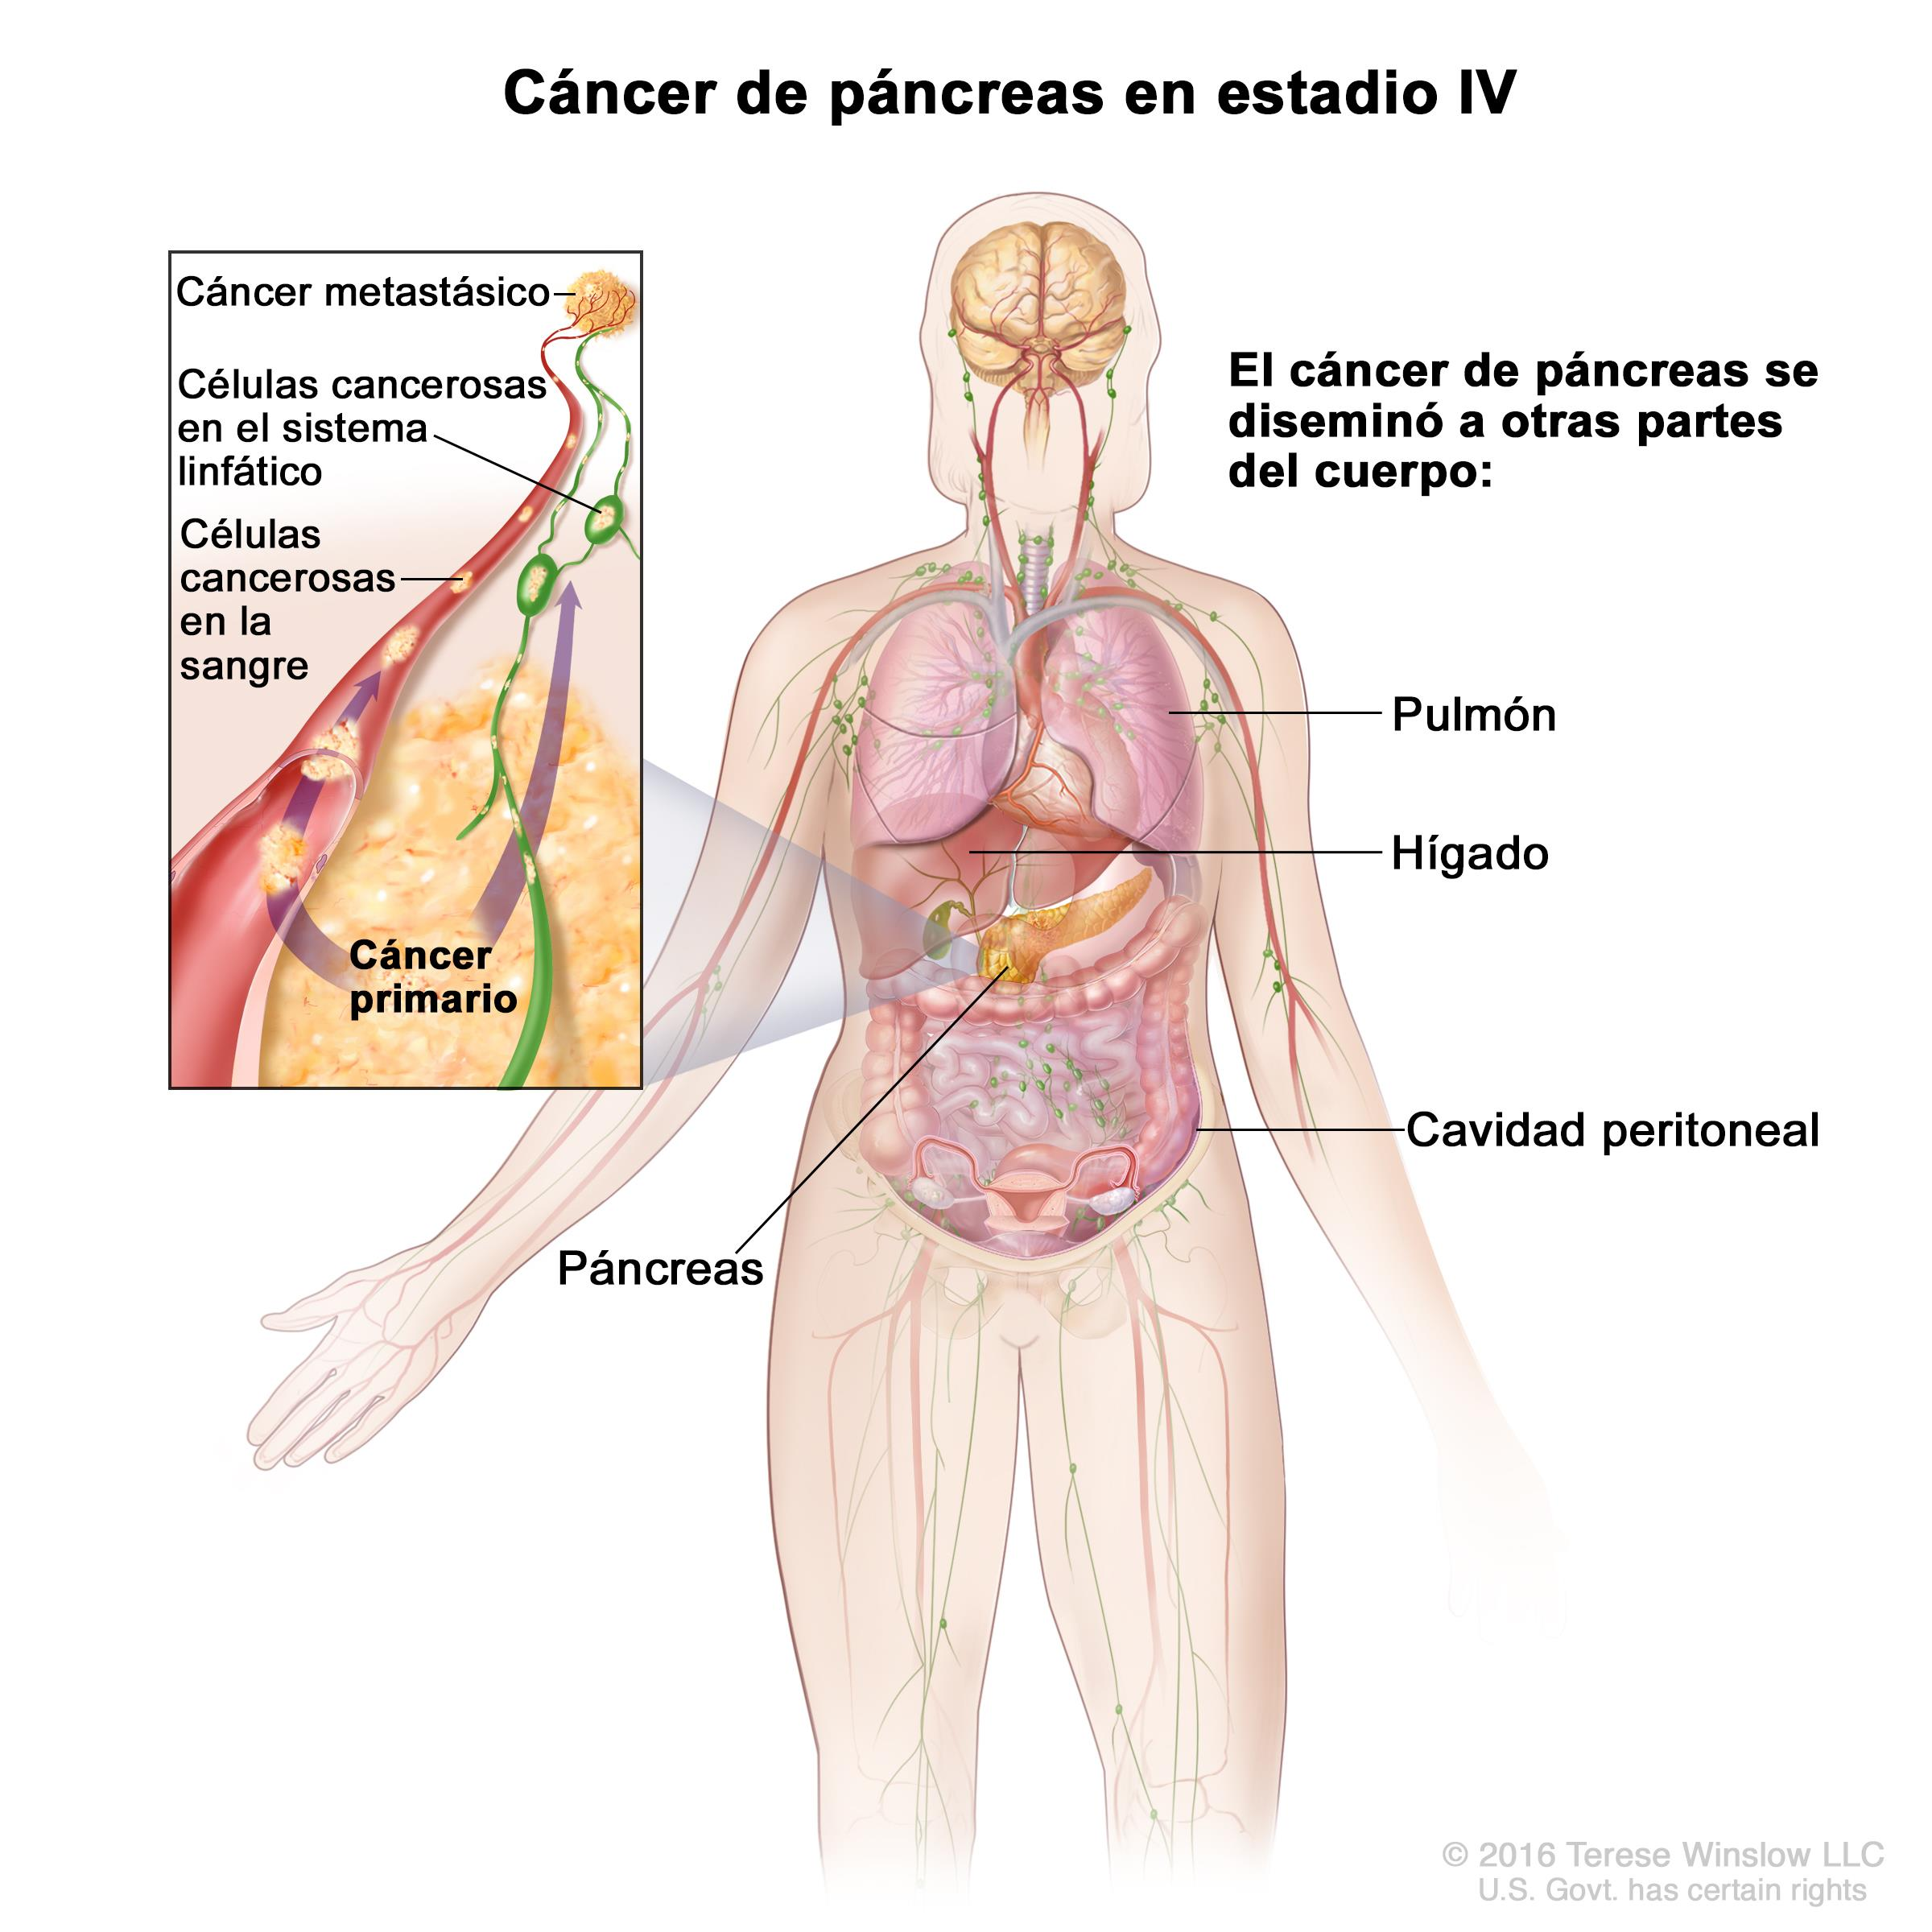 diabetes tipo 1 del cáncer de páncreas